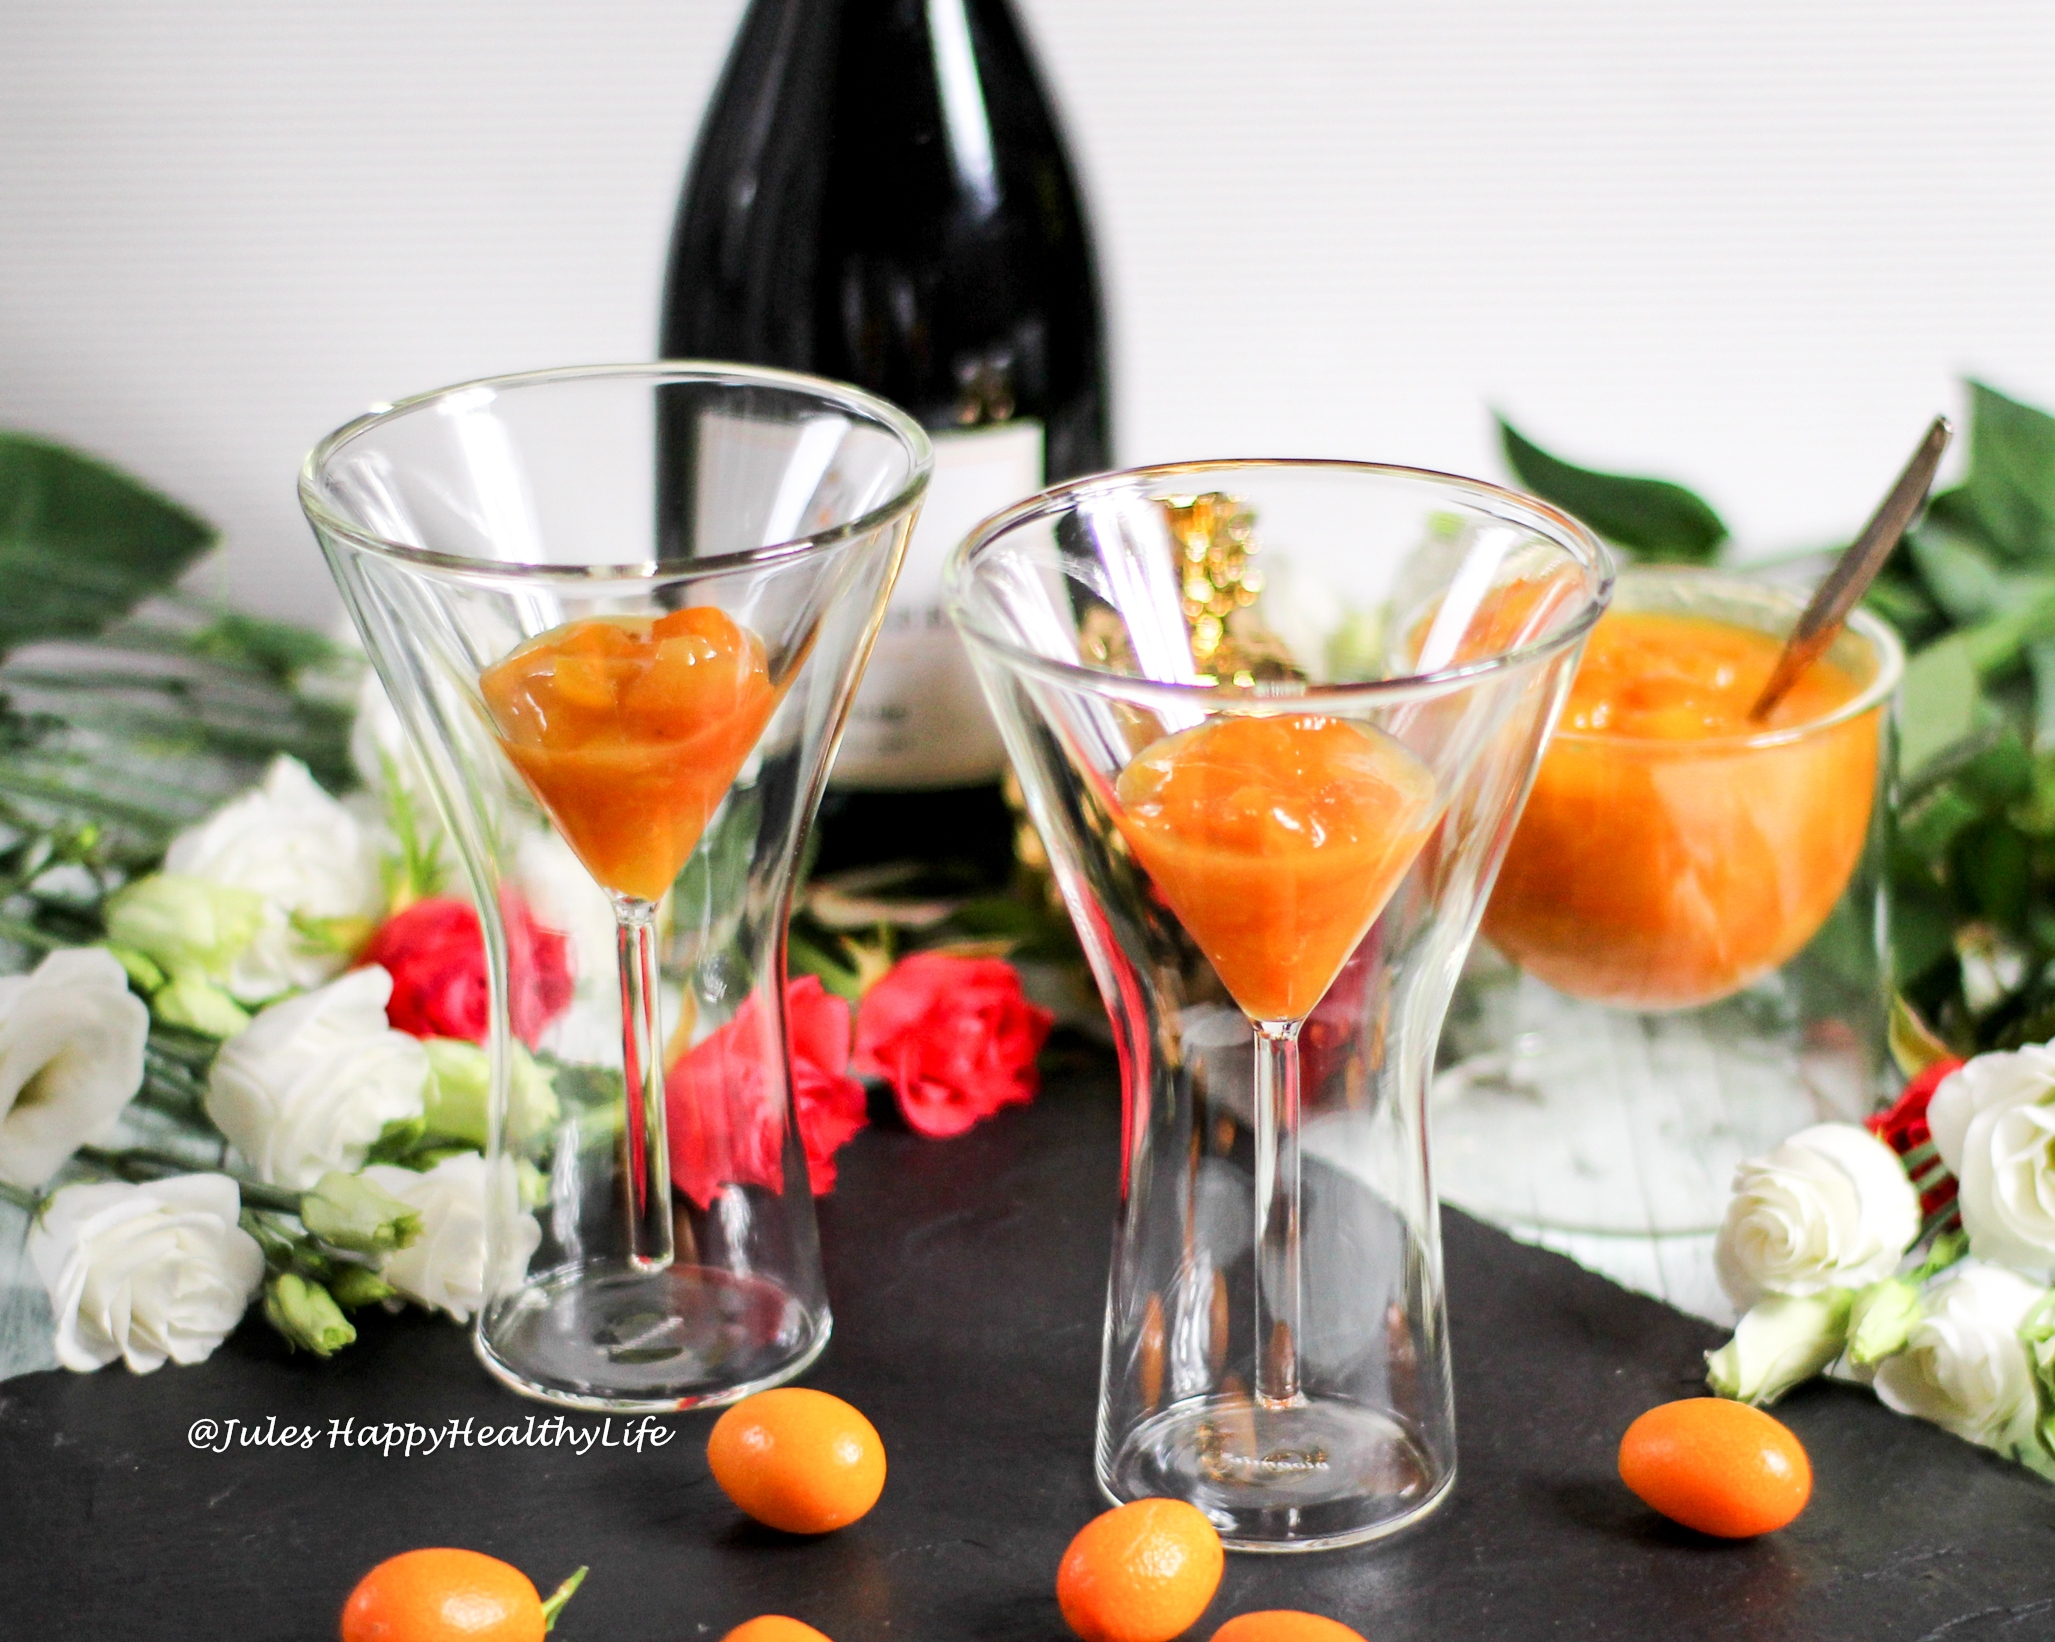 Sparkling Wine from a Winery with Spcied Kumquats